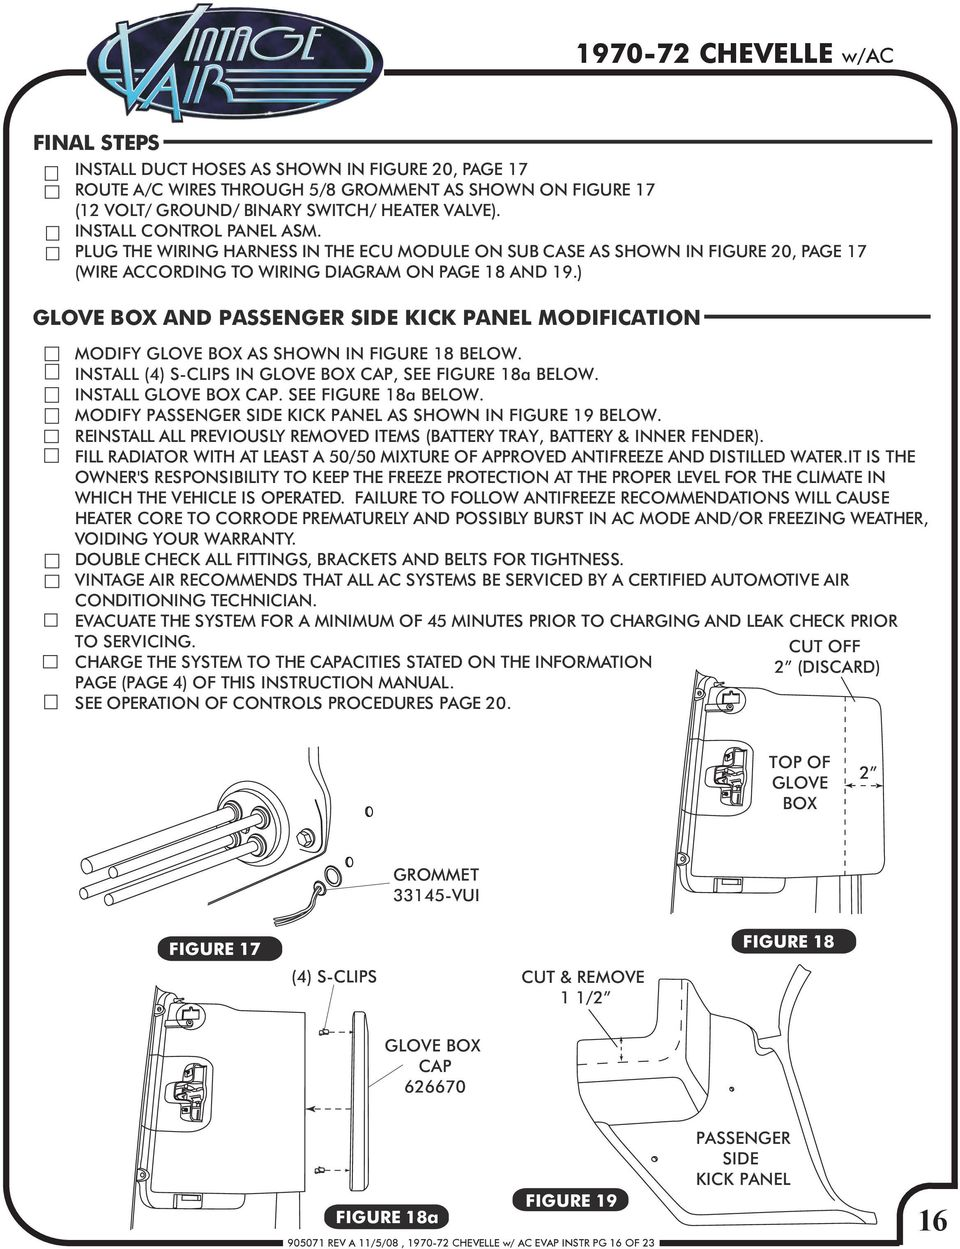 medium resolution of glove box and passenger side kick panel modification modify glove box as shown in figure